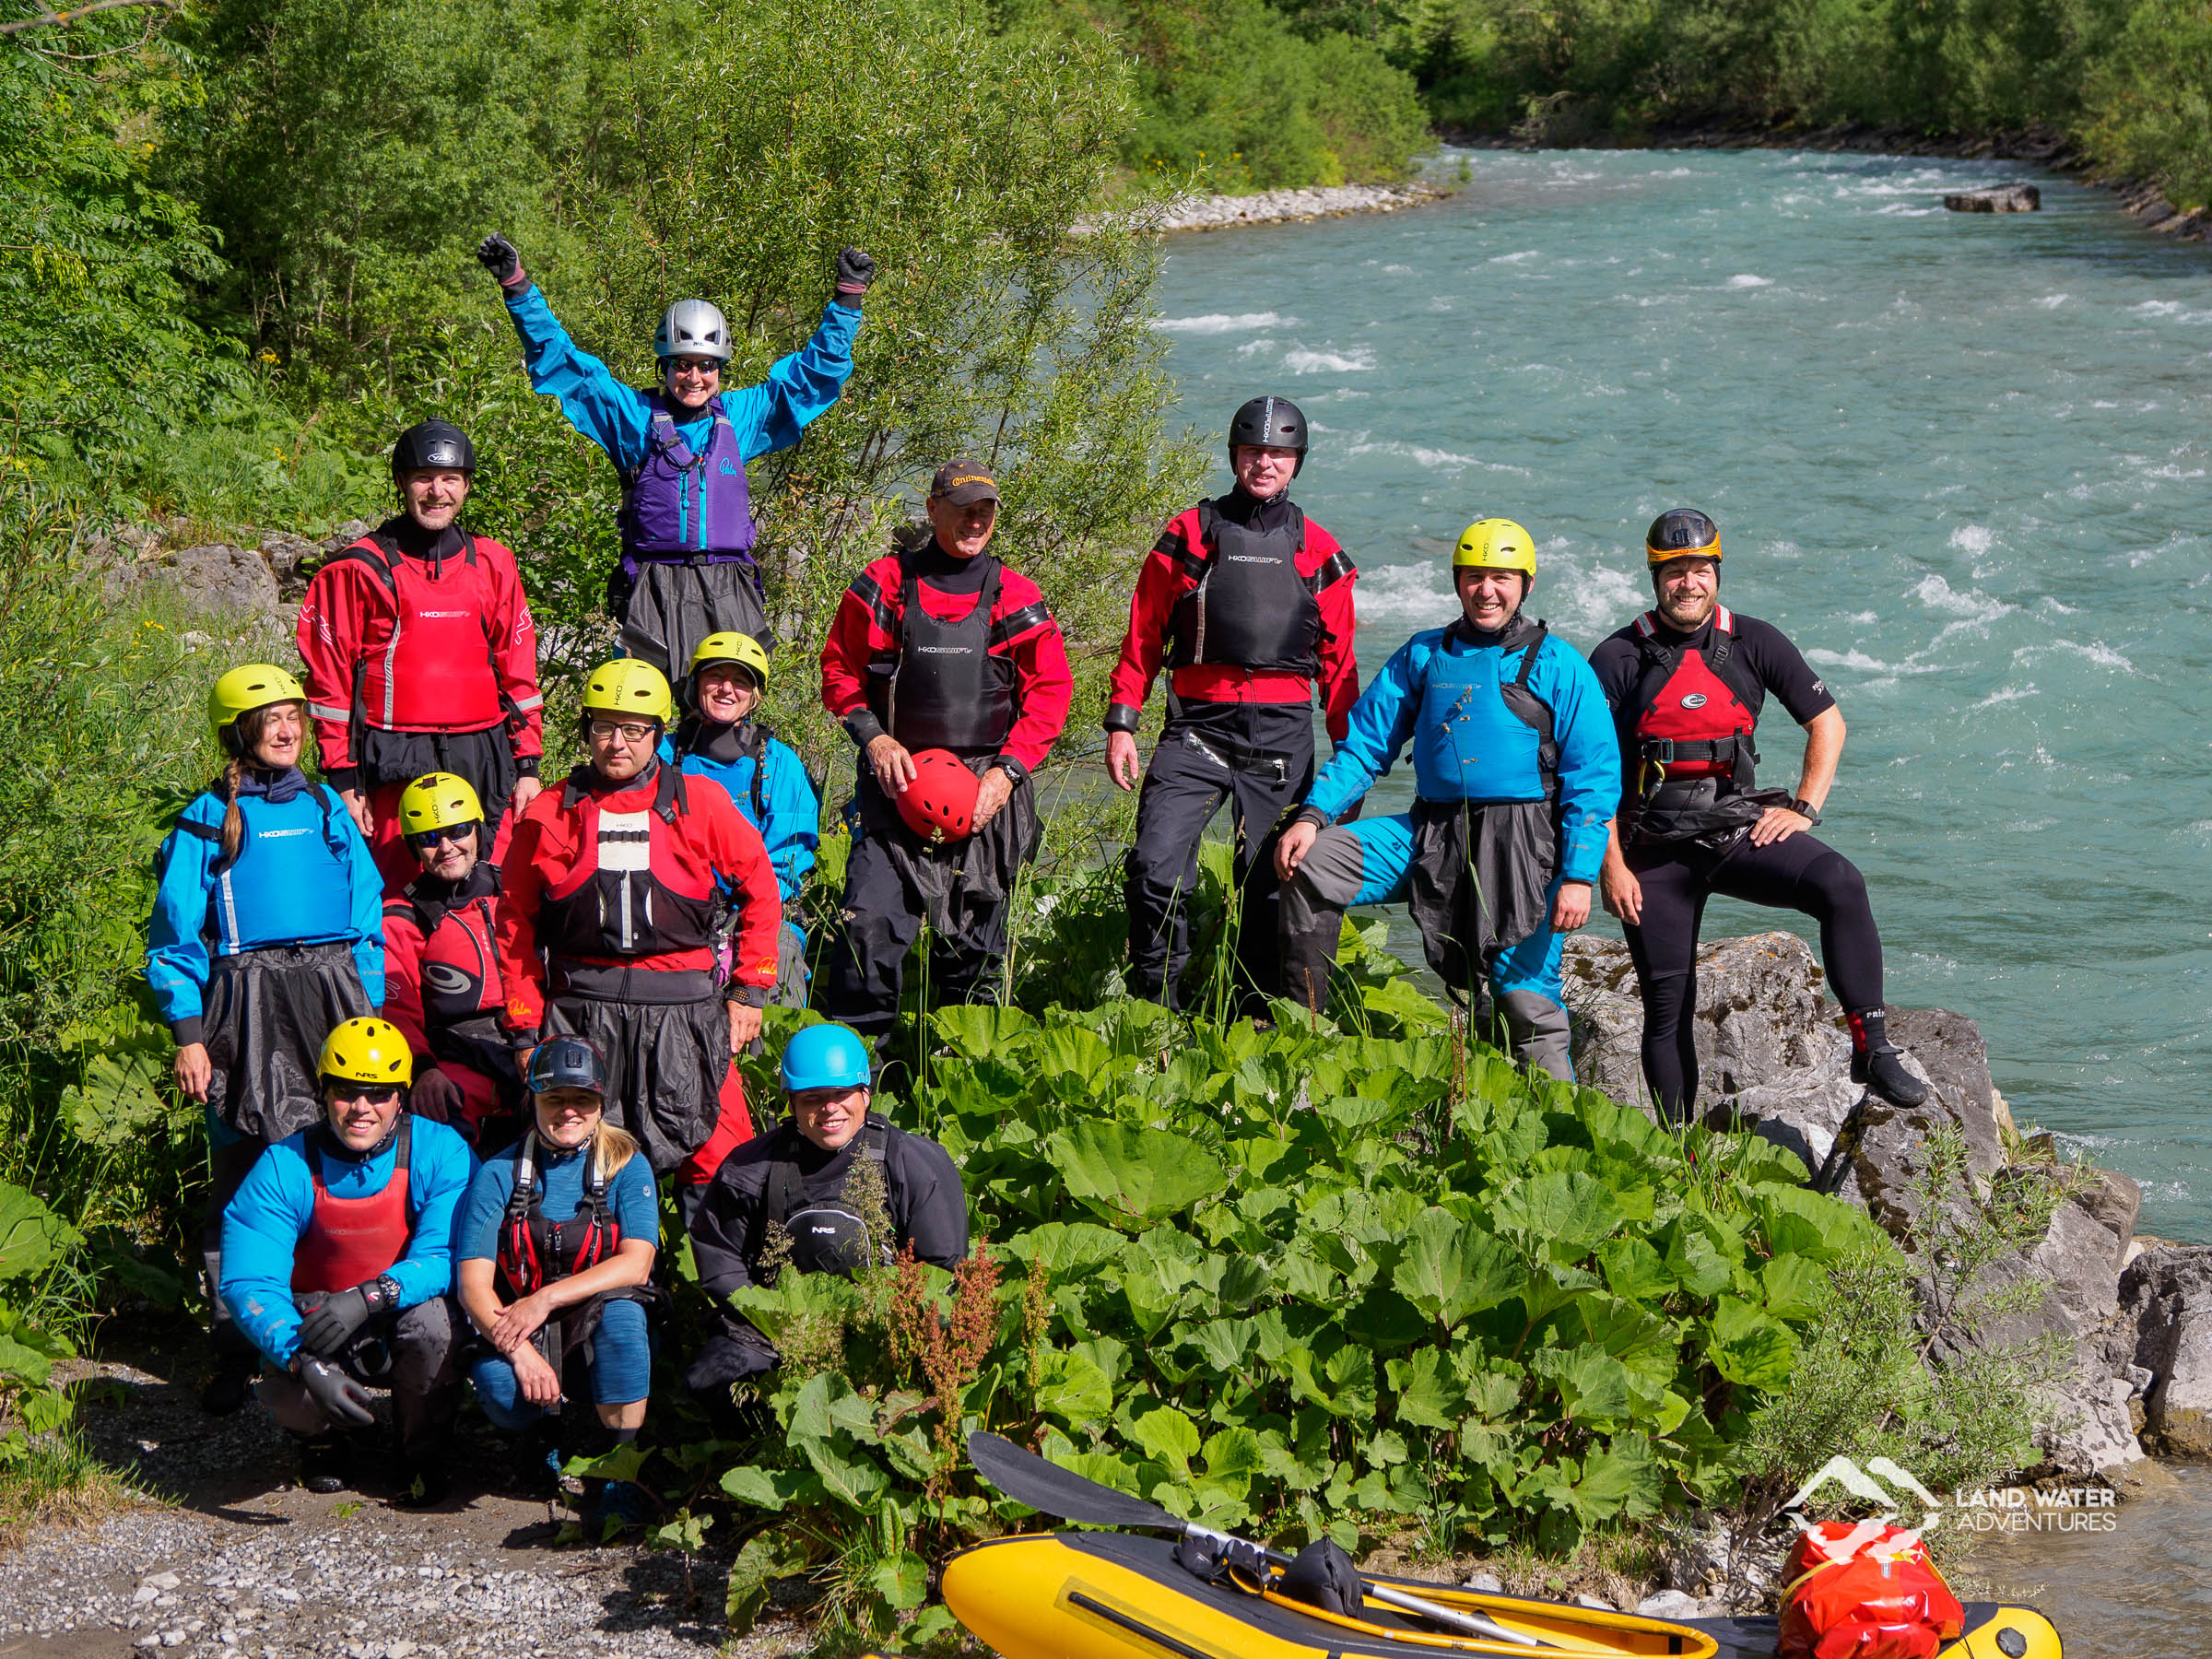 Land Water Adventures Crew at Isar © Land Water Adventures